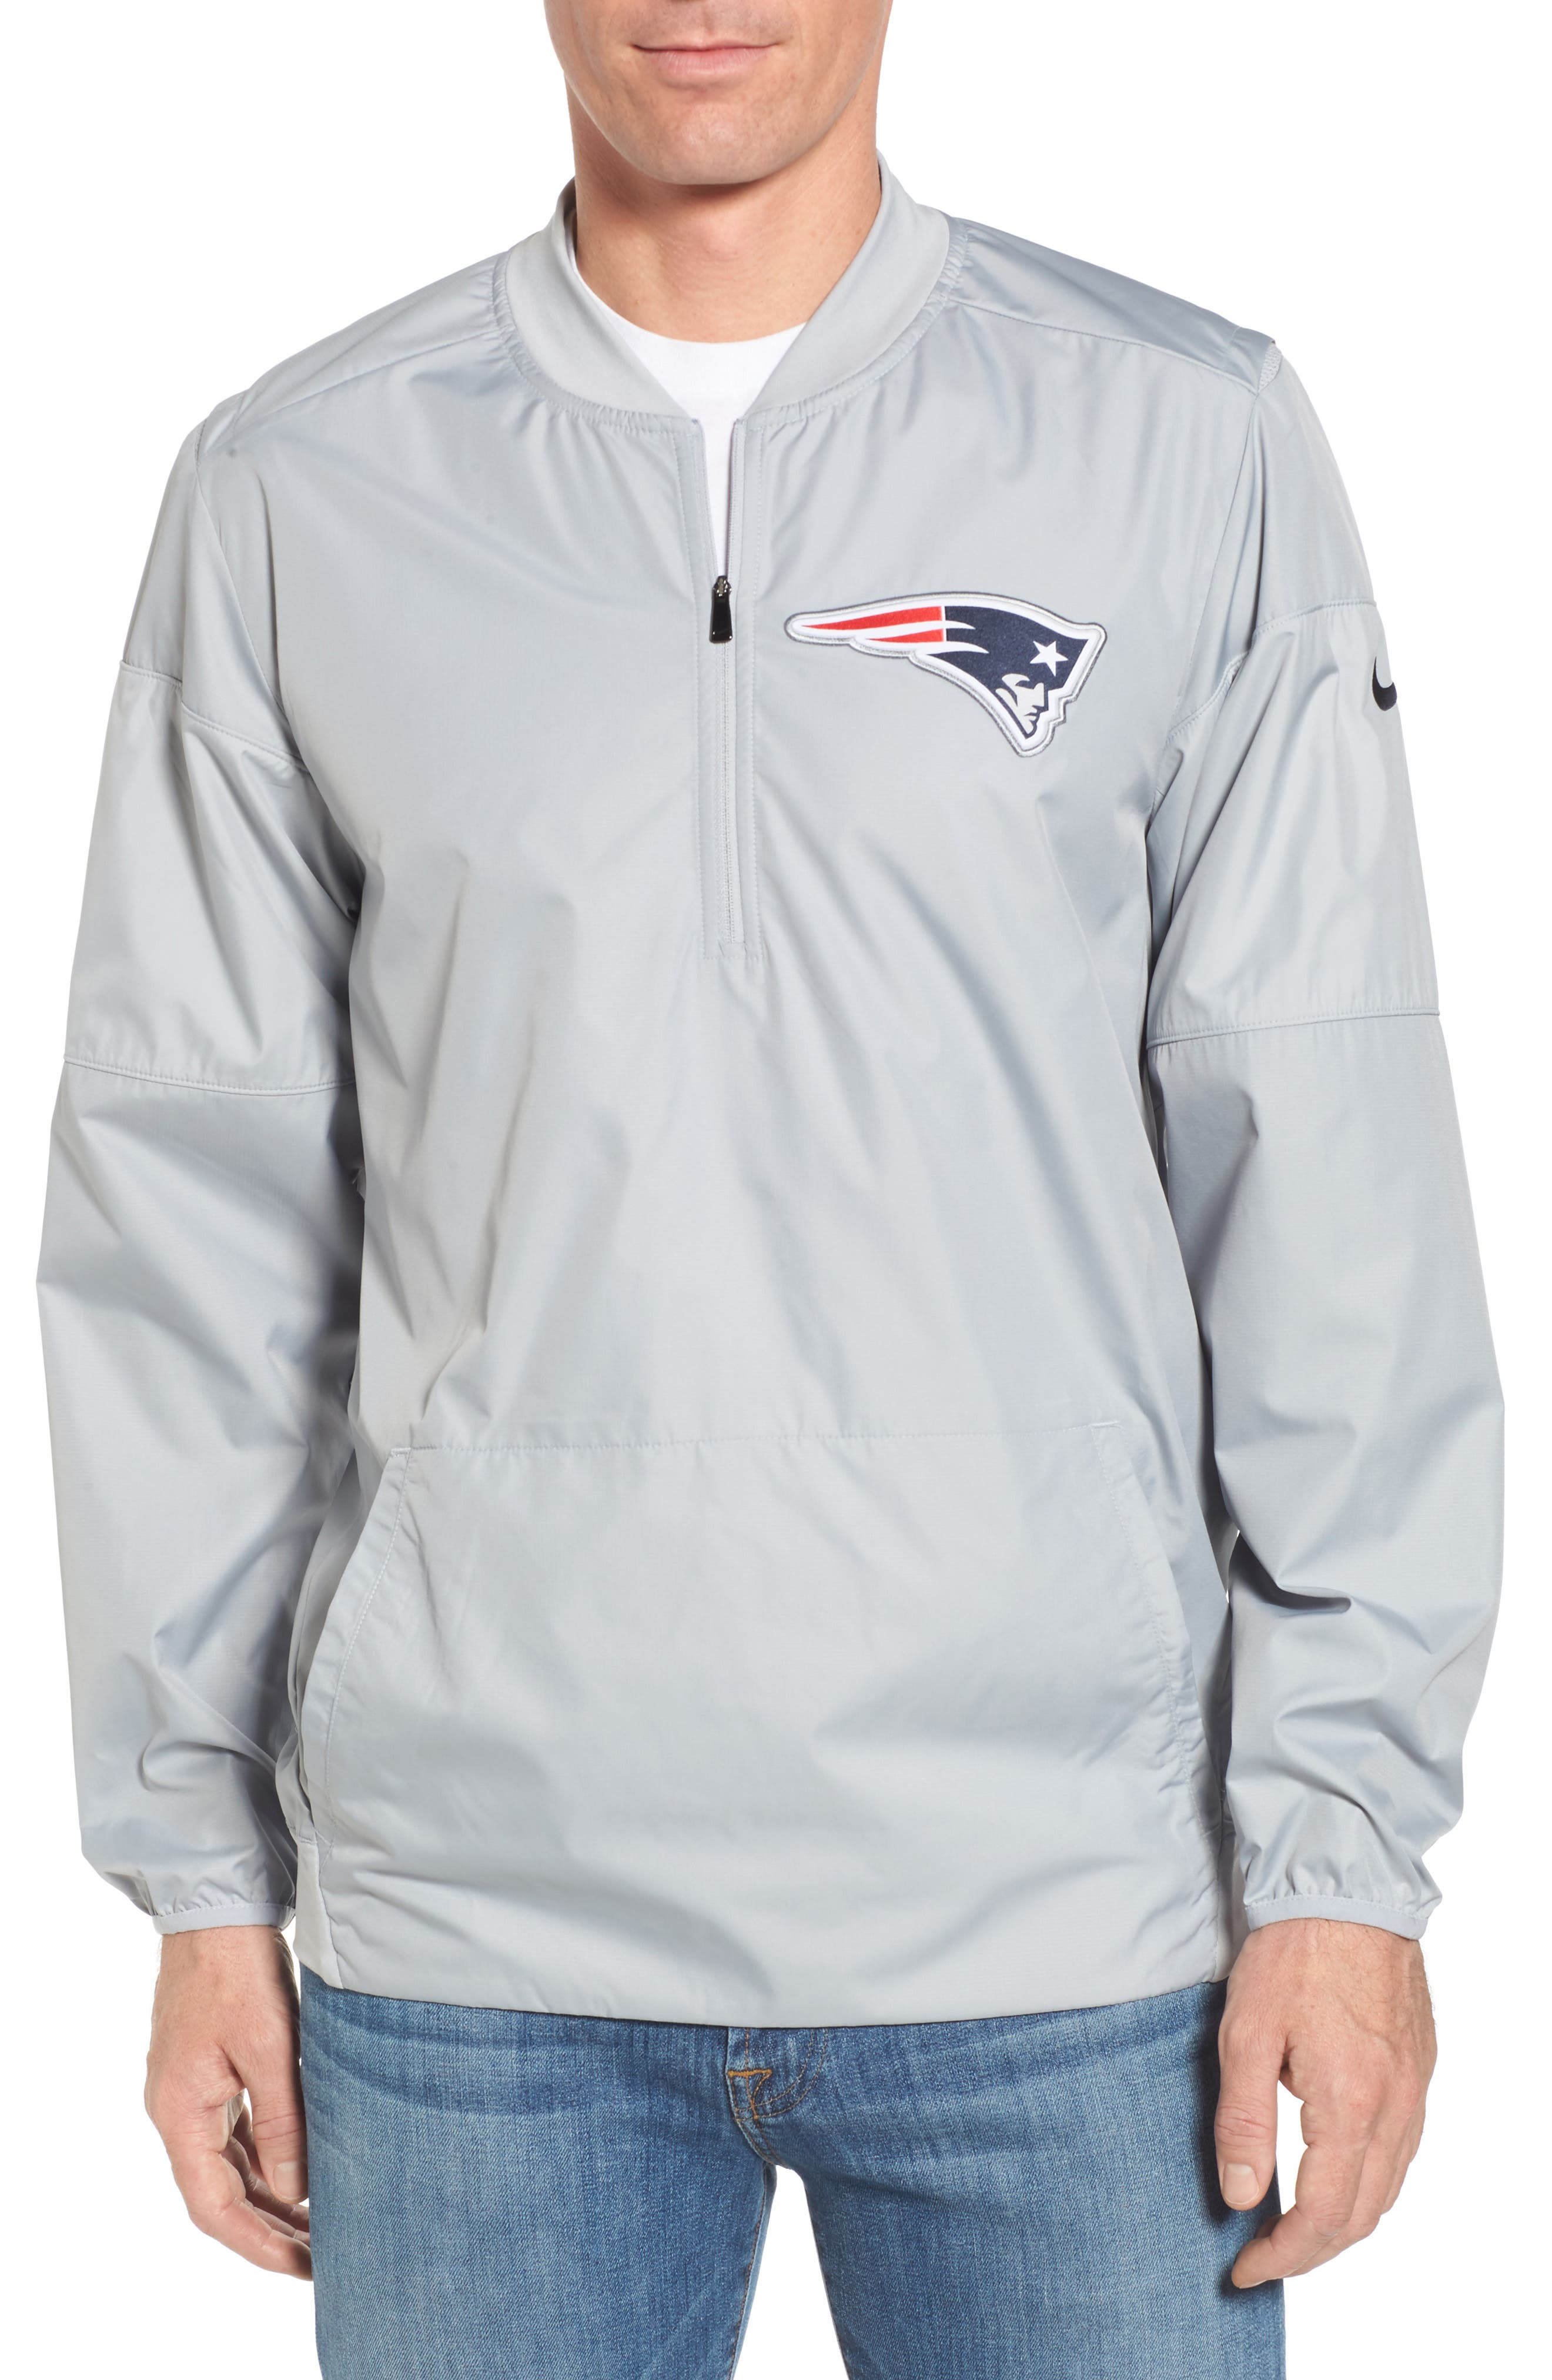 Nike Lockdown New England Patriots Pullover Jacket